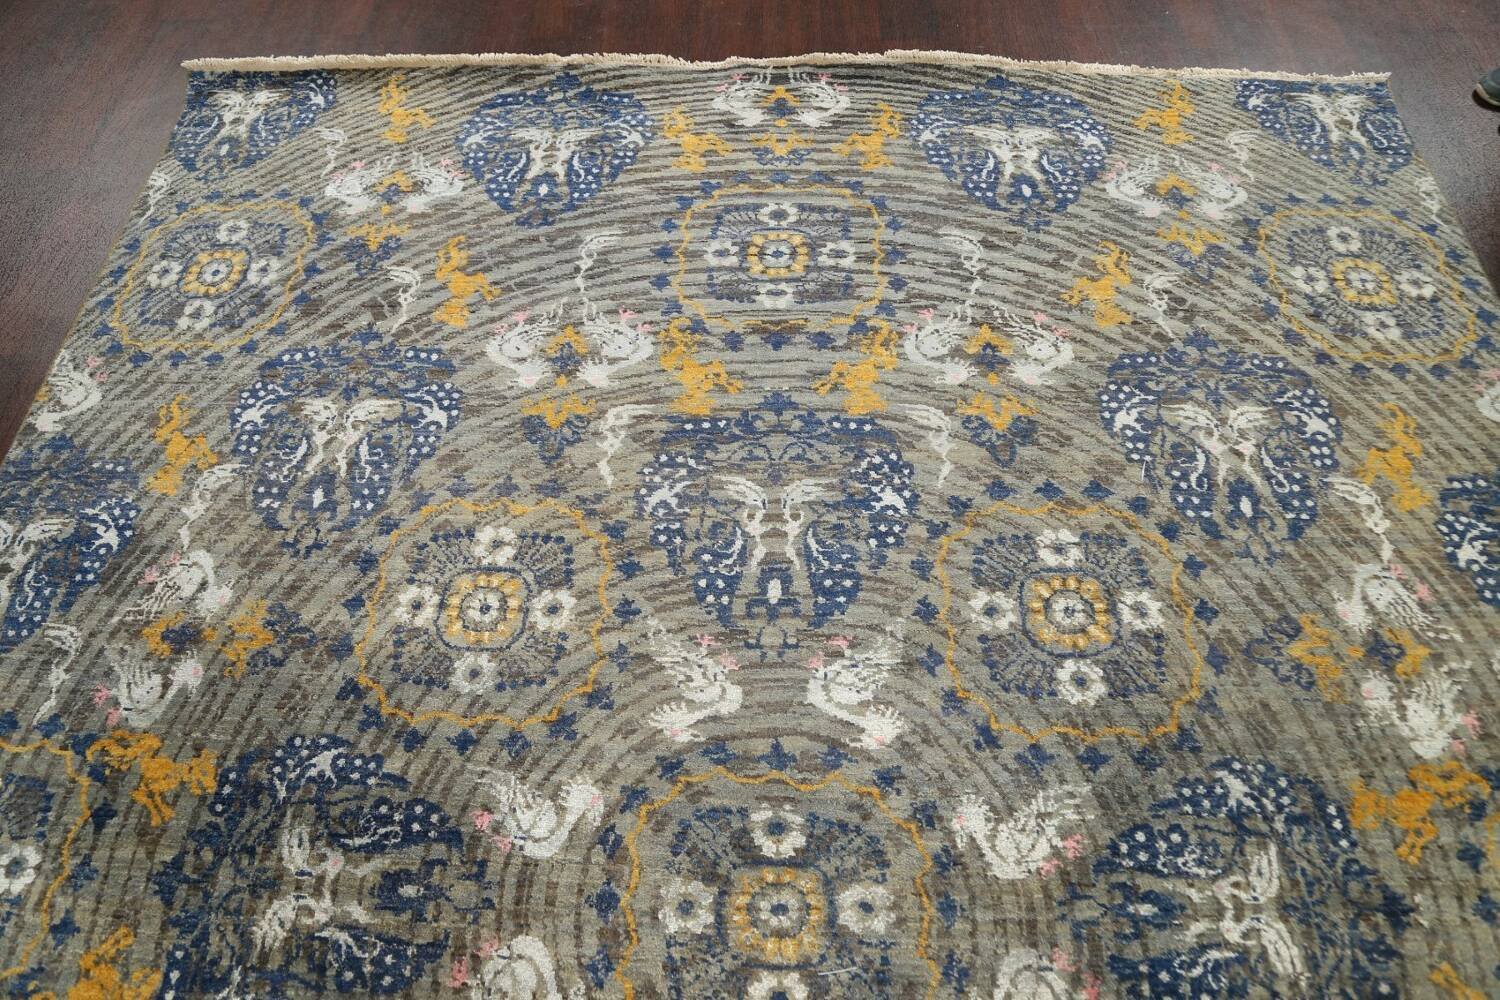 Vegetable Dye Animal Pictorial Abstract Oriental Area Rug 8x11 image 13